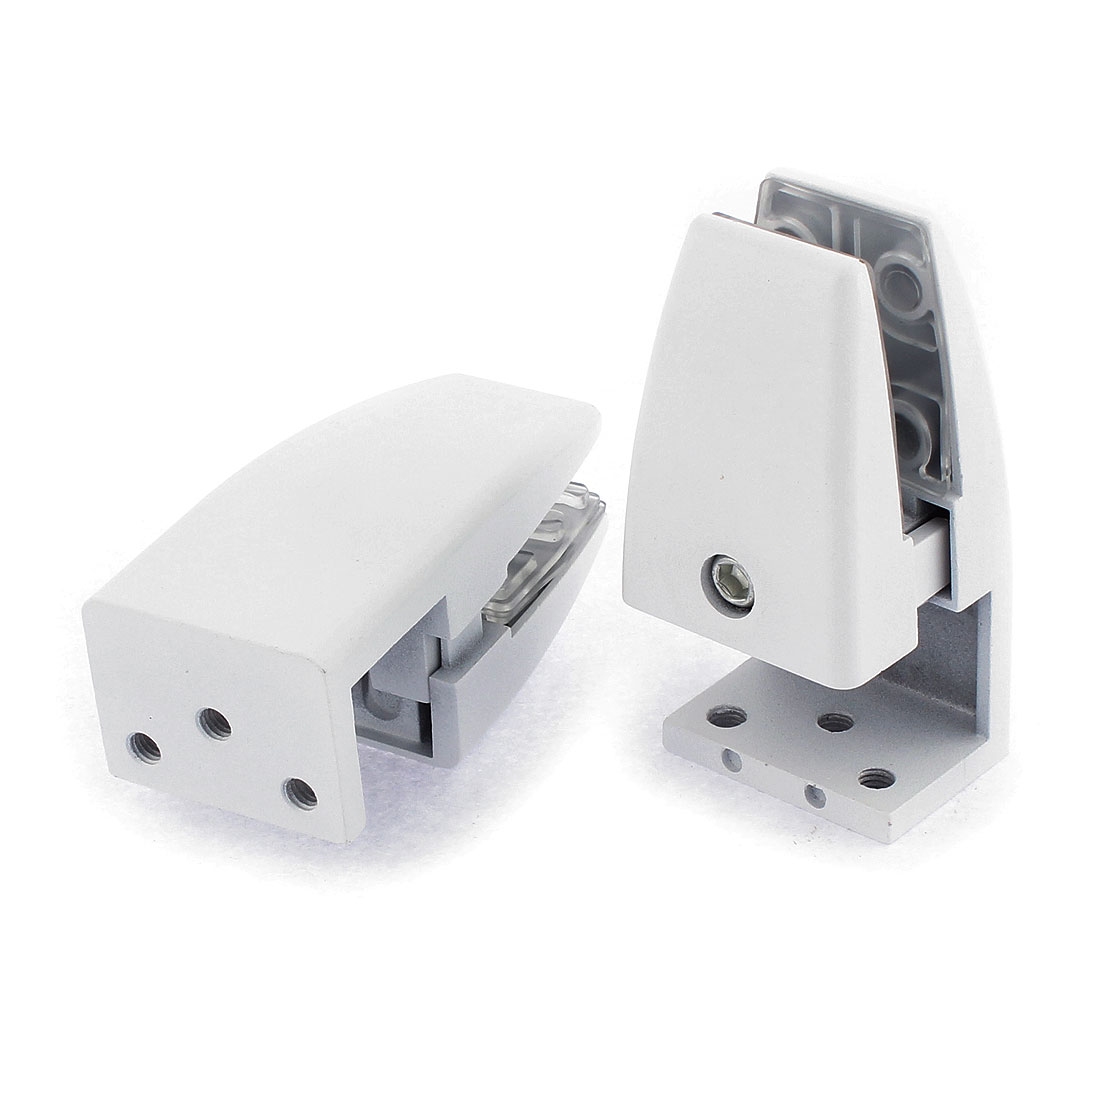 Aluminum Adjustable Glass Shelf Clip Holder Bracket White 2PCS